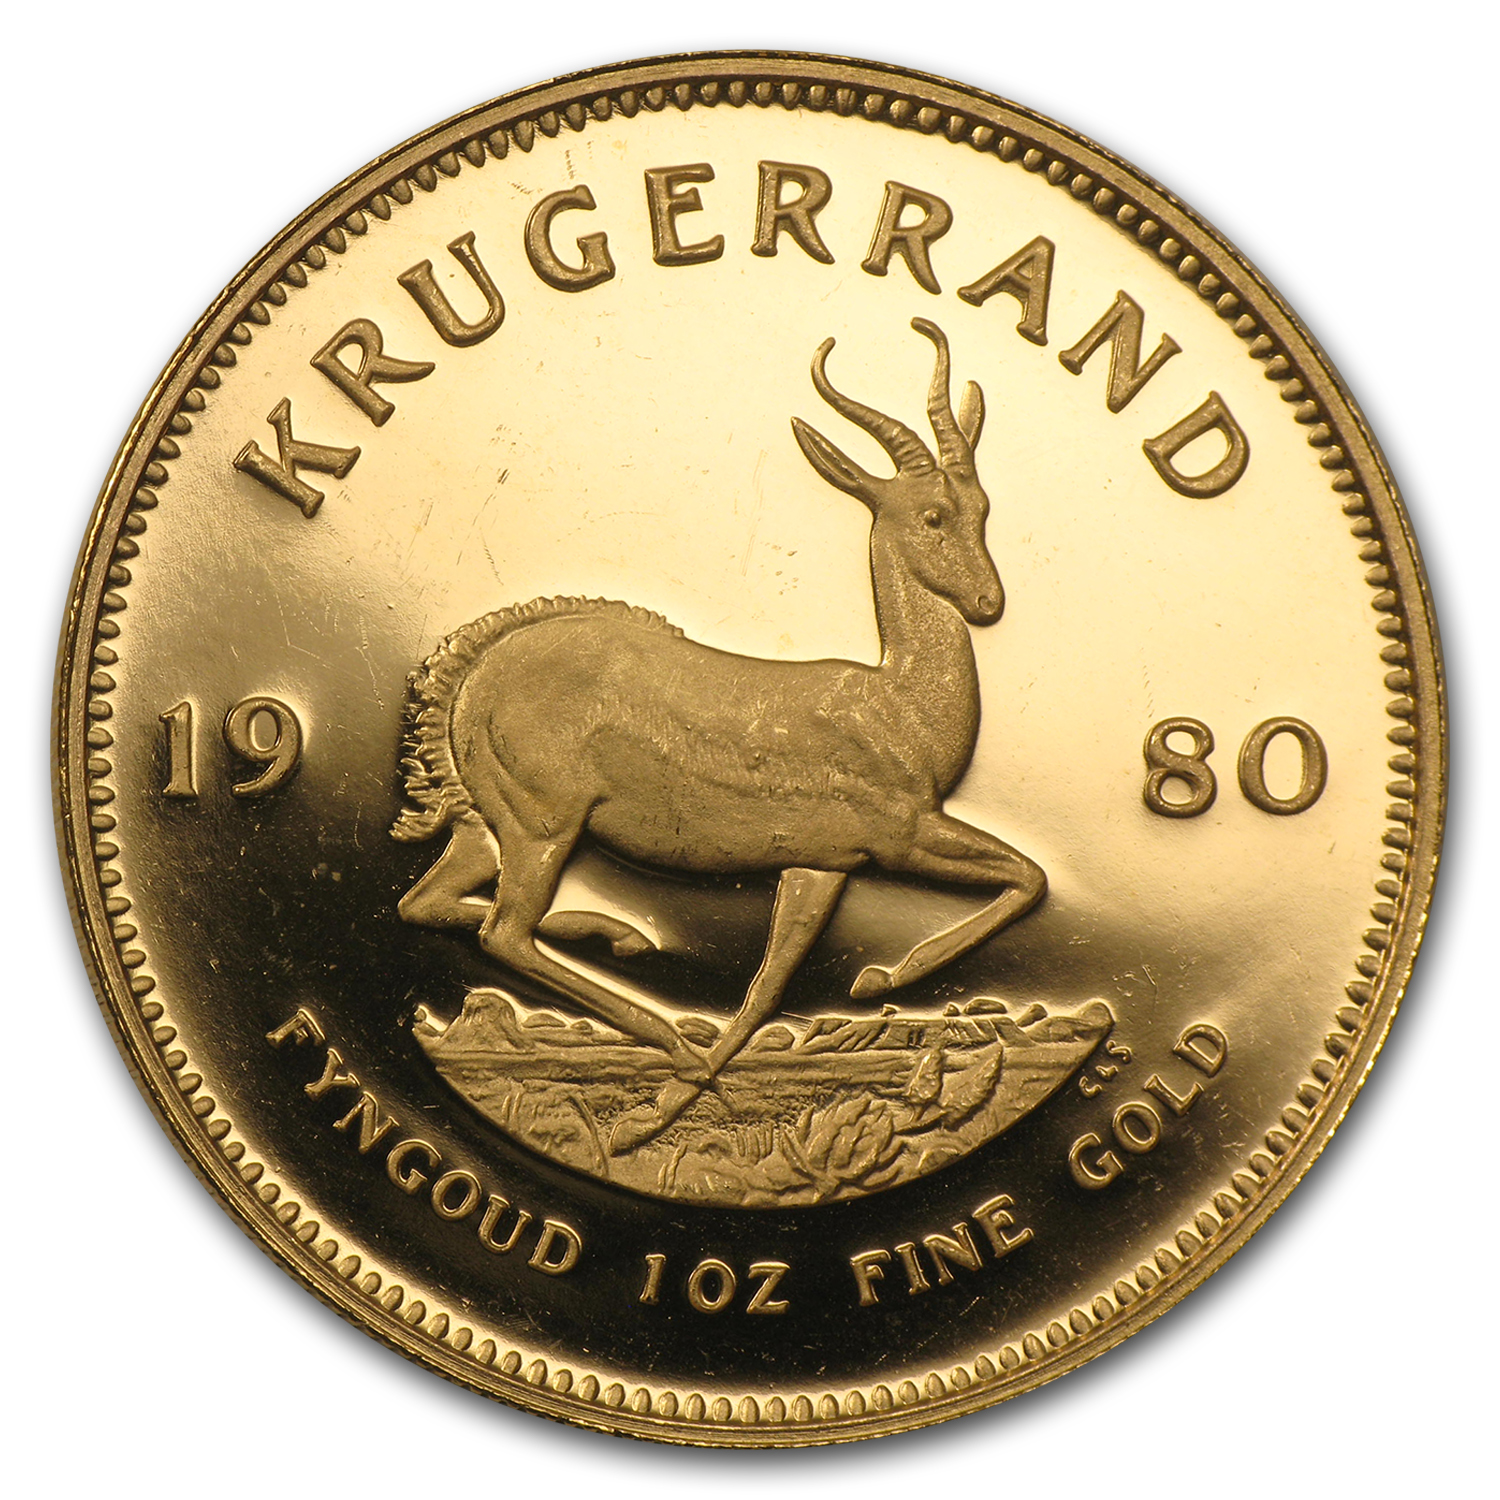 1980 1 oz Gold South African Krugerrand (Proof)